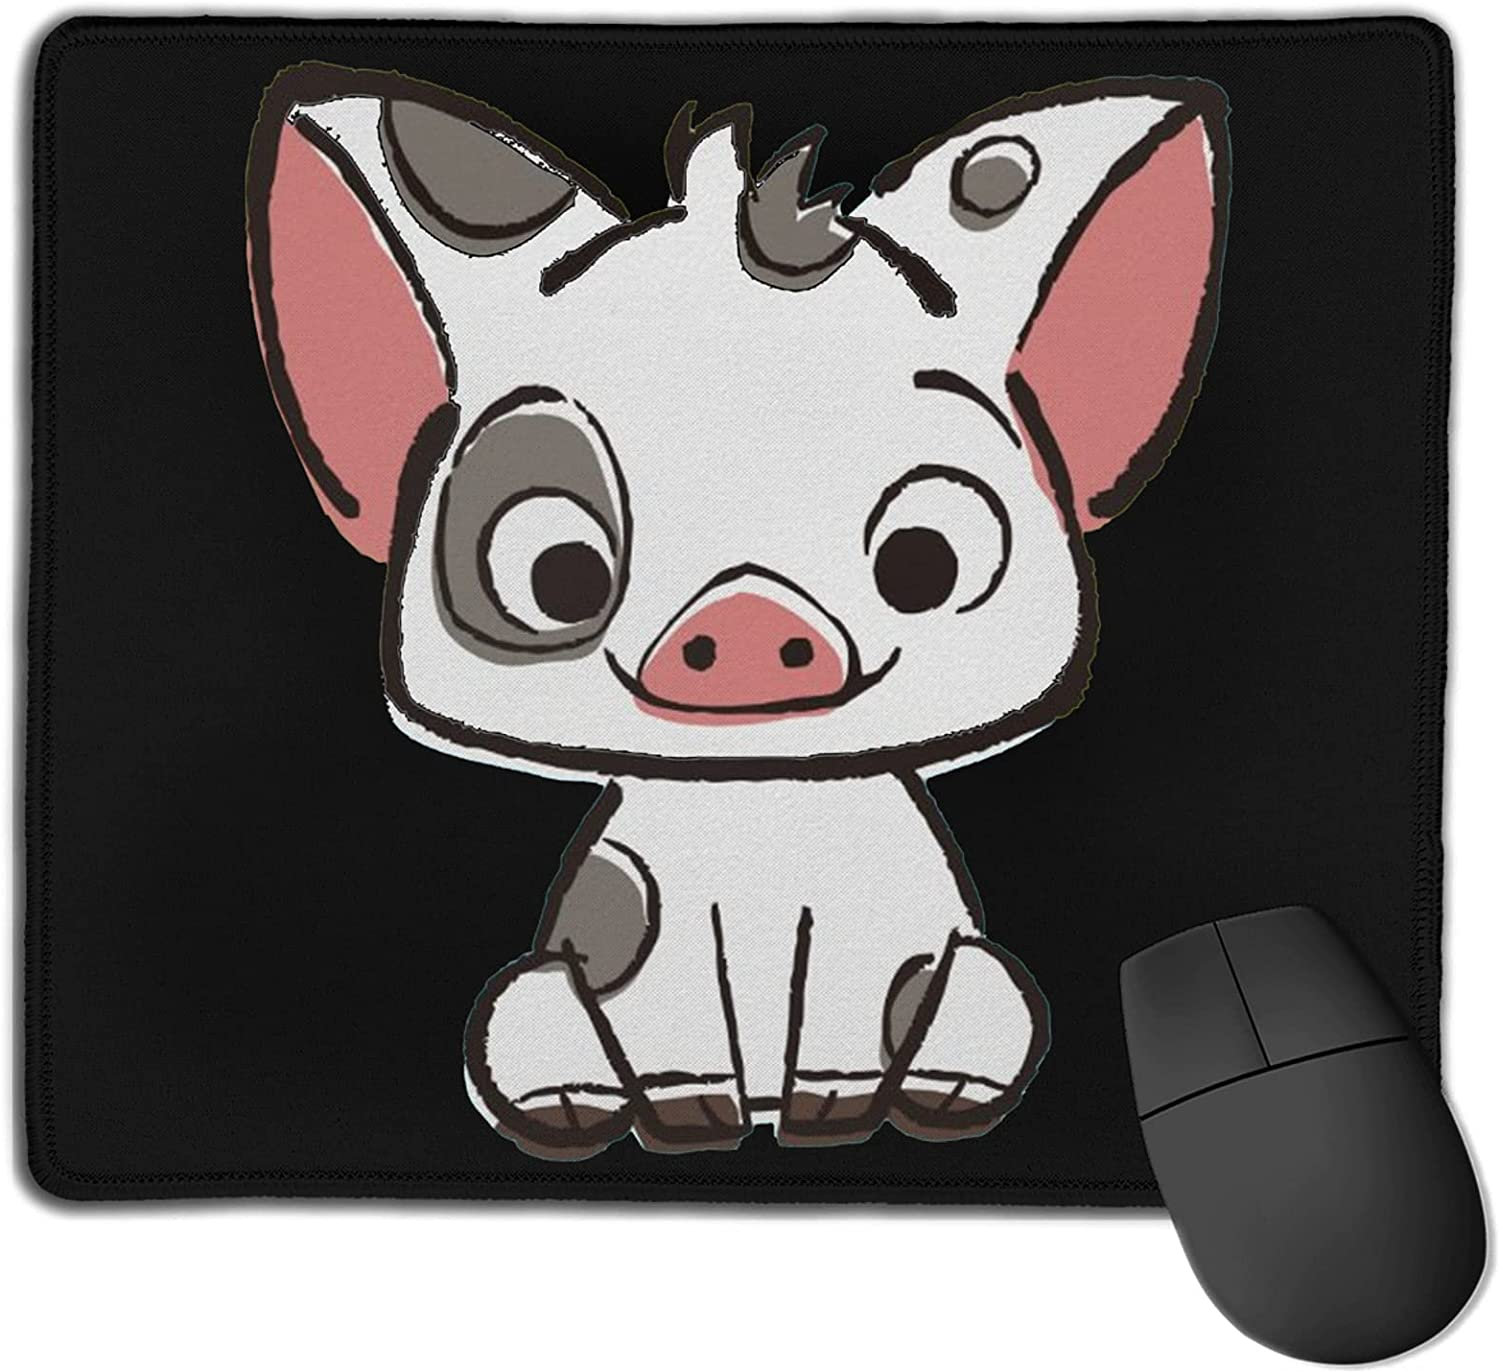 Pua The Pot Bellied Pig Gaming Computer Mouse Sale special price Product Pad Offi